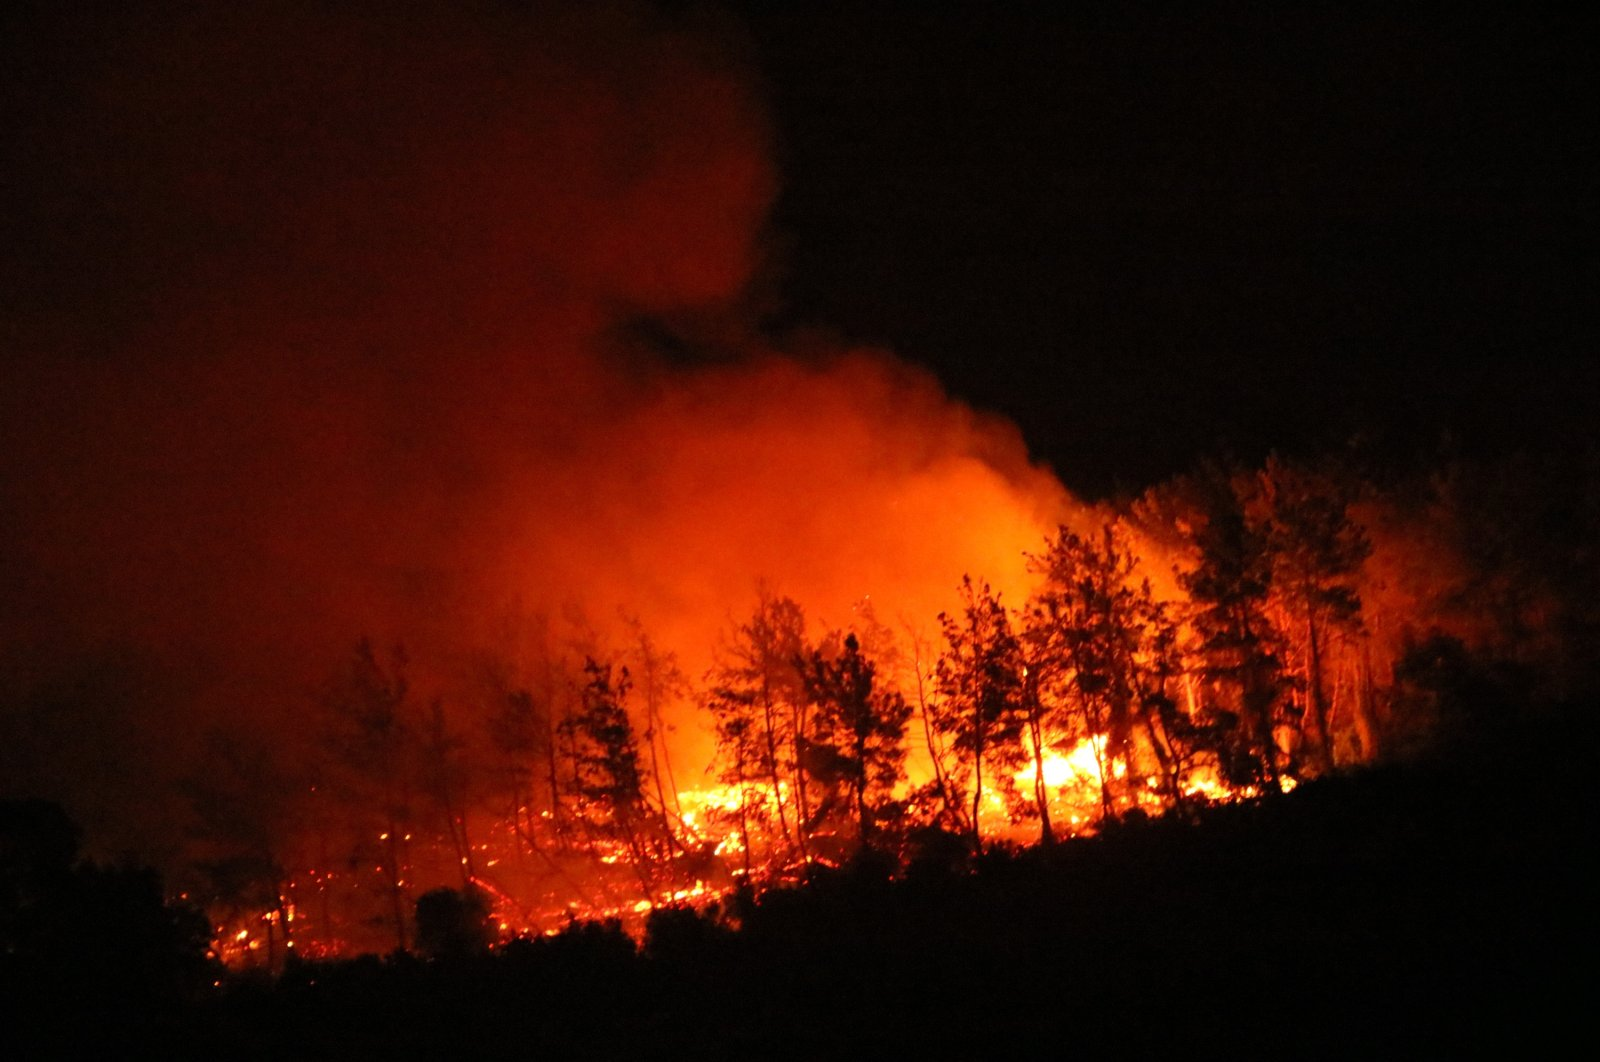 Flames engulf a forest in the Gündoğdu neighborhood of Manavgat district, in Antalya, southern Turkey, Aug. 2, 2021. (DHA PHOTO)